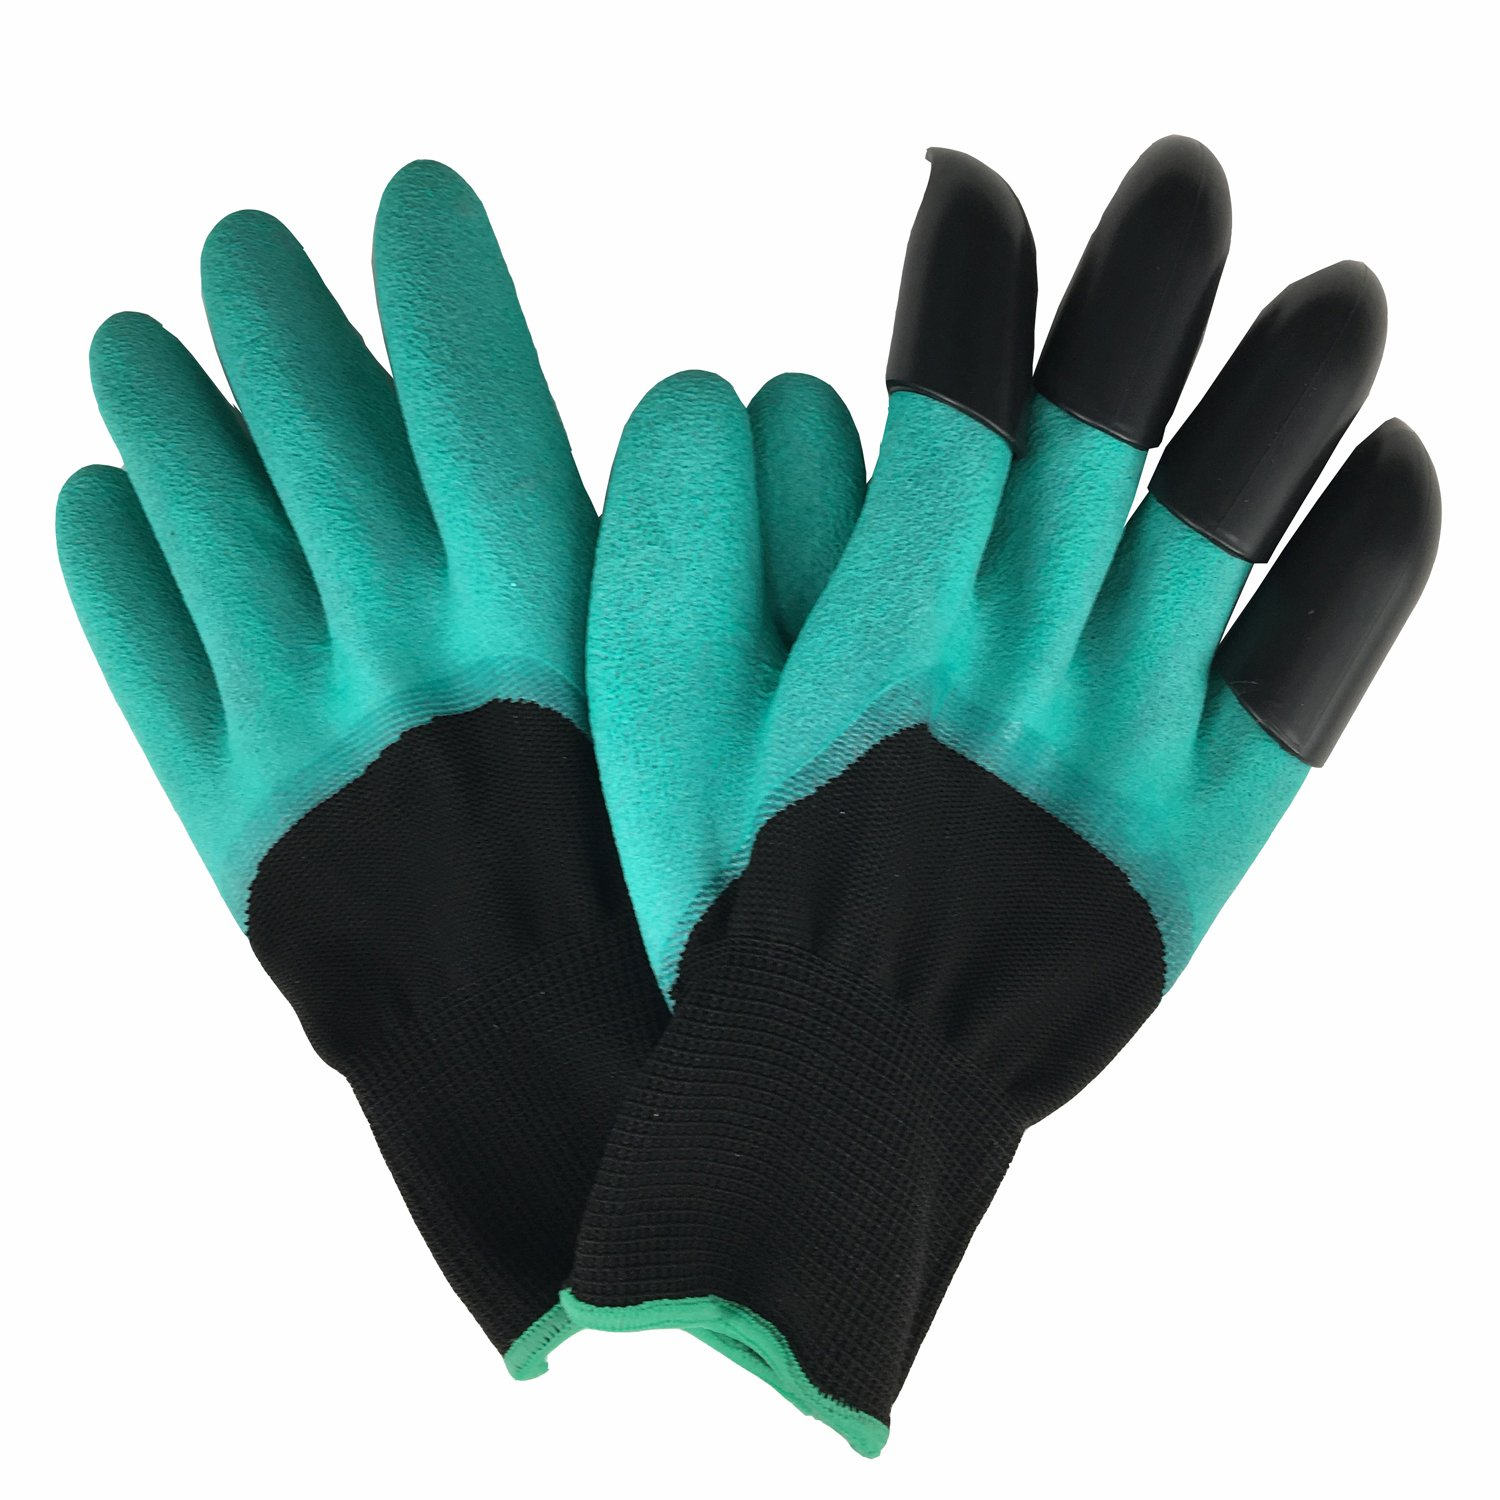 JZJZJZ Garden Genie Gloves with ABS Plastic Fingertips Uniex Claws, Quick and Easy for Digging and Planting